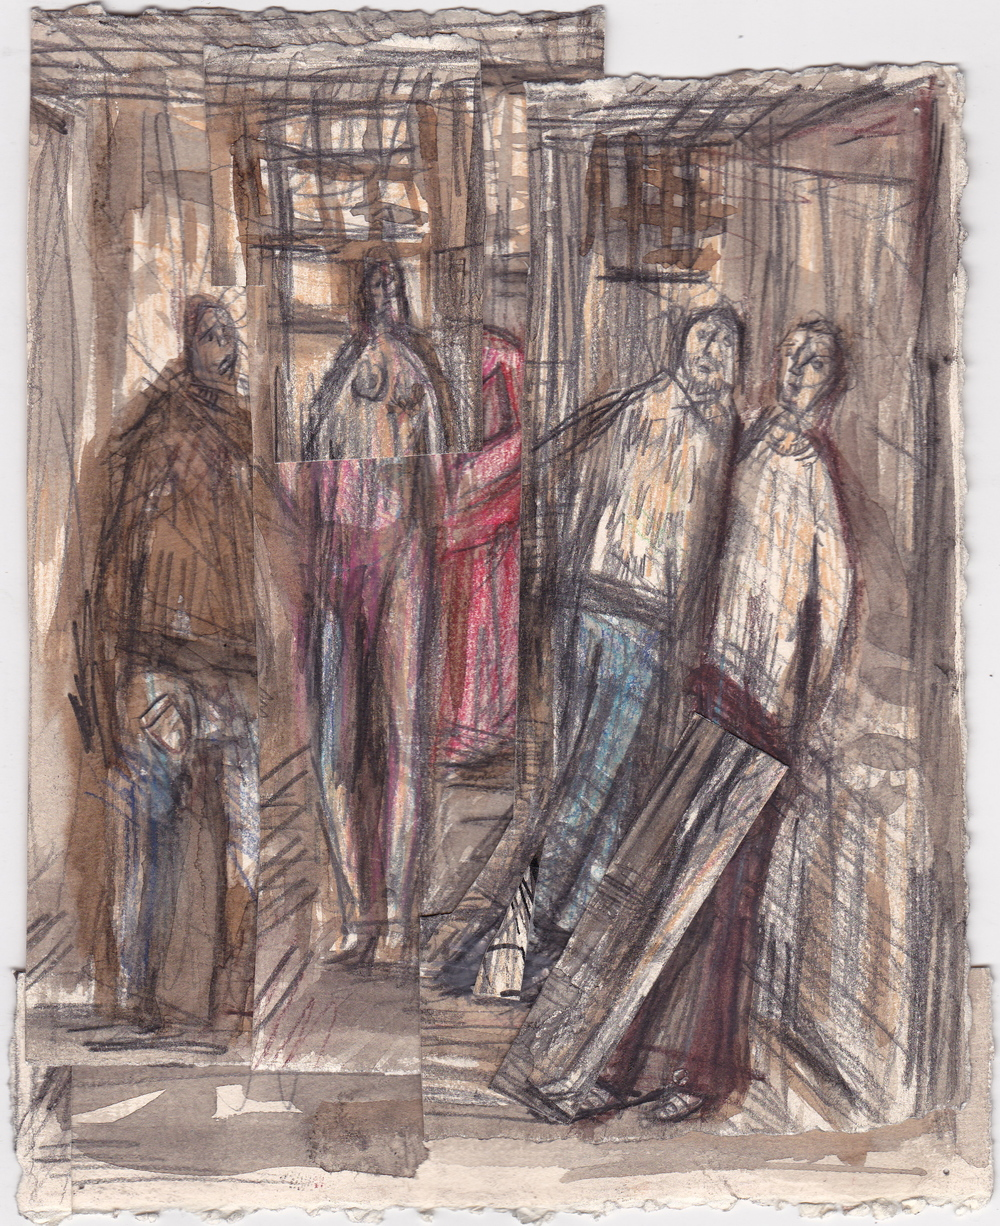 Sandpoint Hallway  , graphite, colored pencil and ink on paper, 7.5x11 inches, 2013